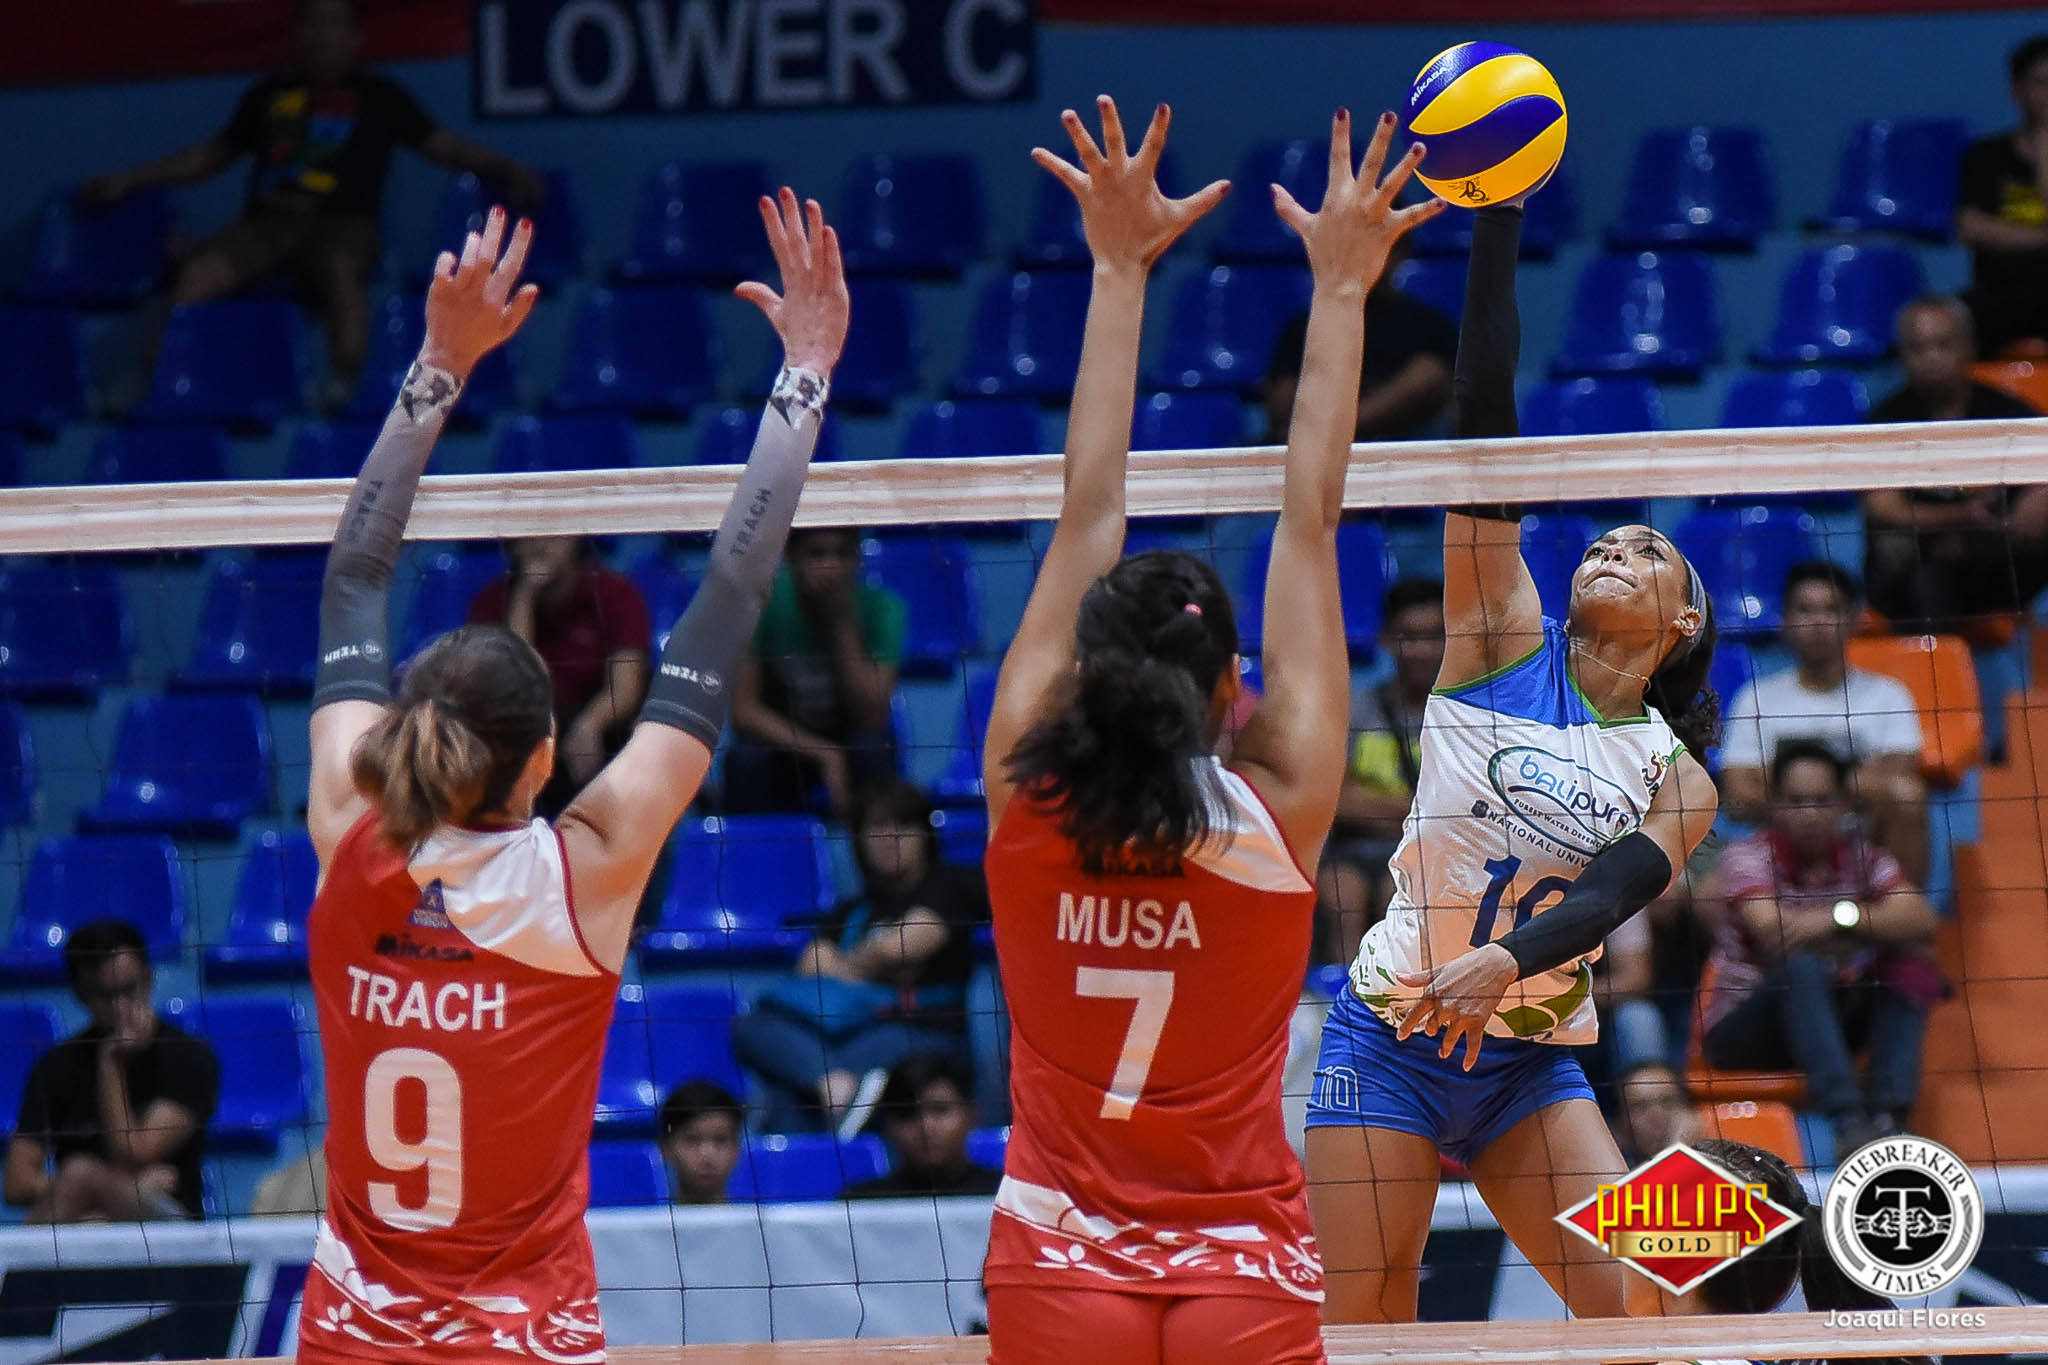 PVL Reinforced Petrogazz vs. Balipure – Johnson-9528